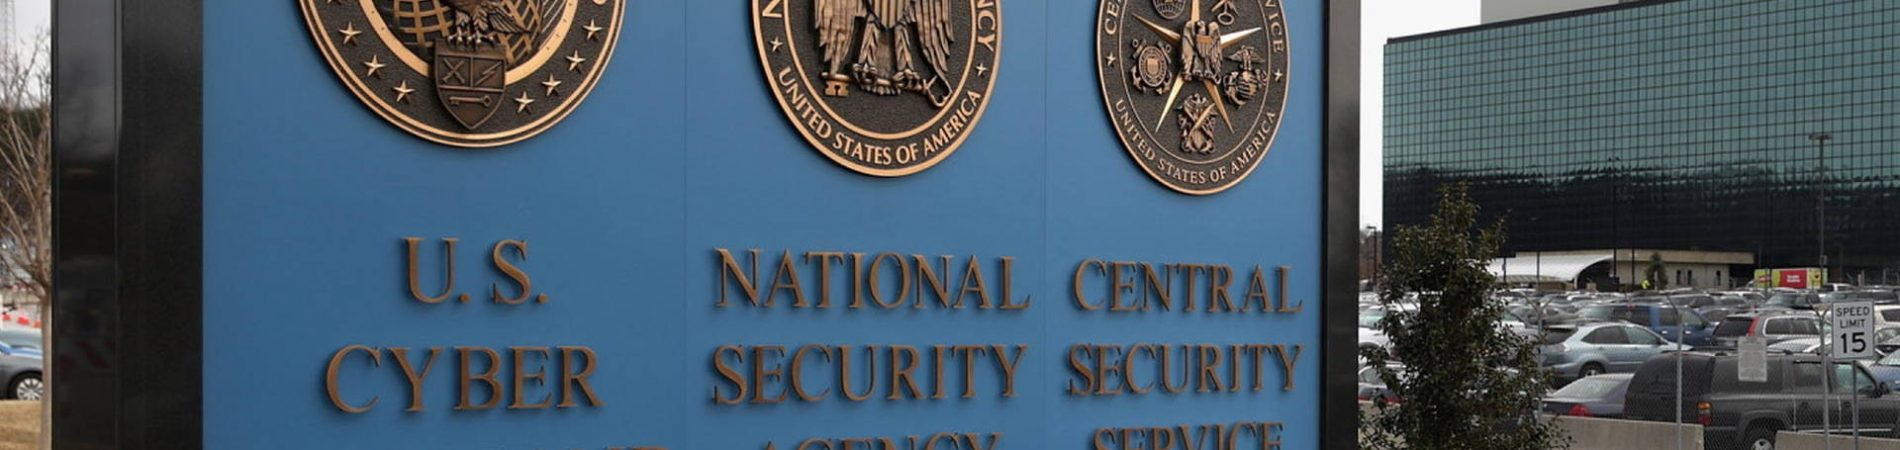 Cyber Command NSA Central Security Service